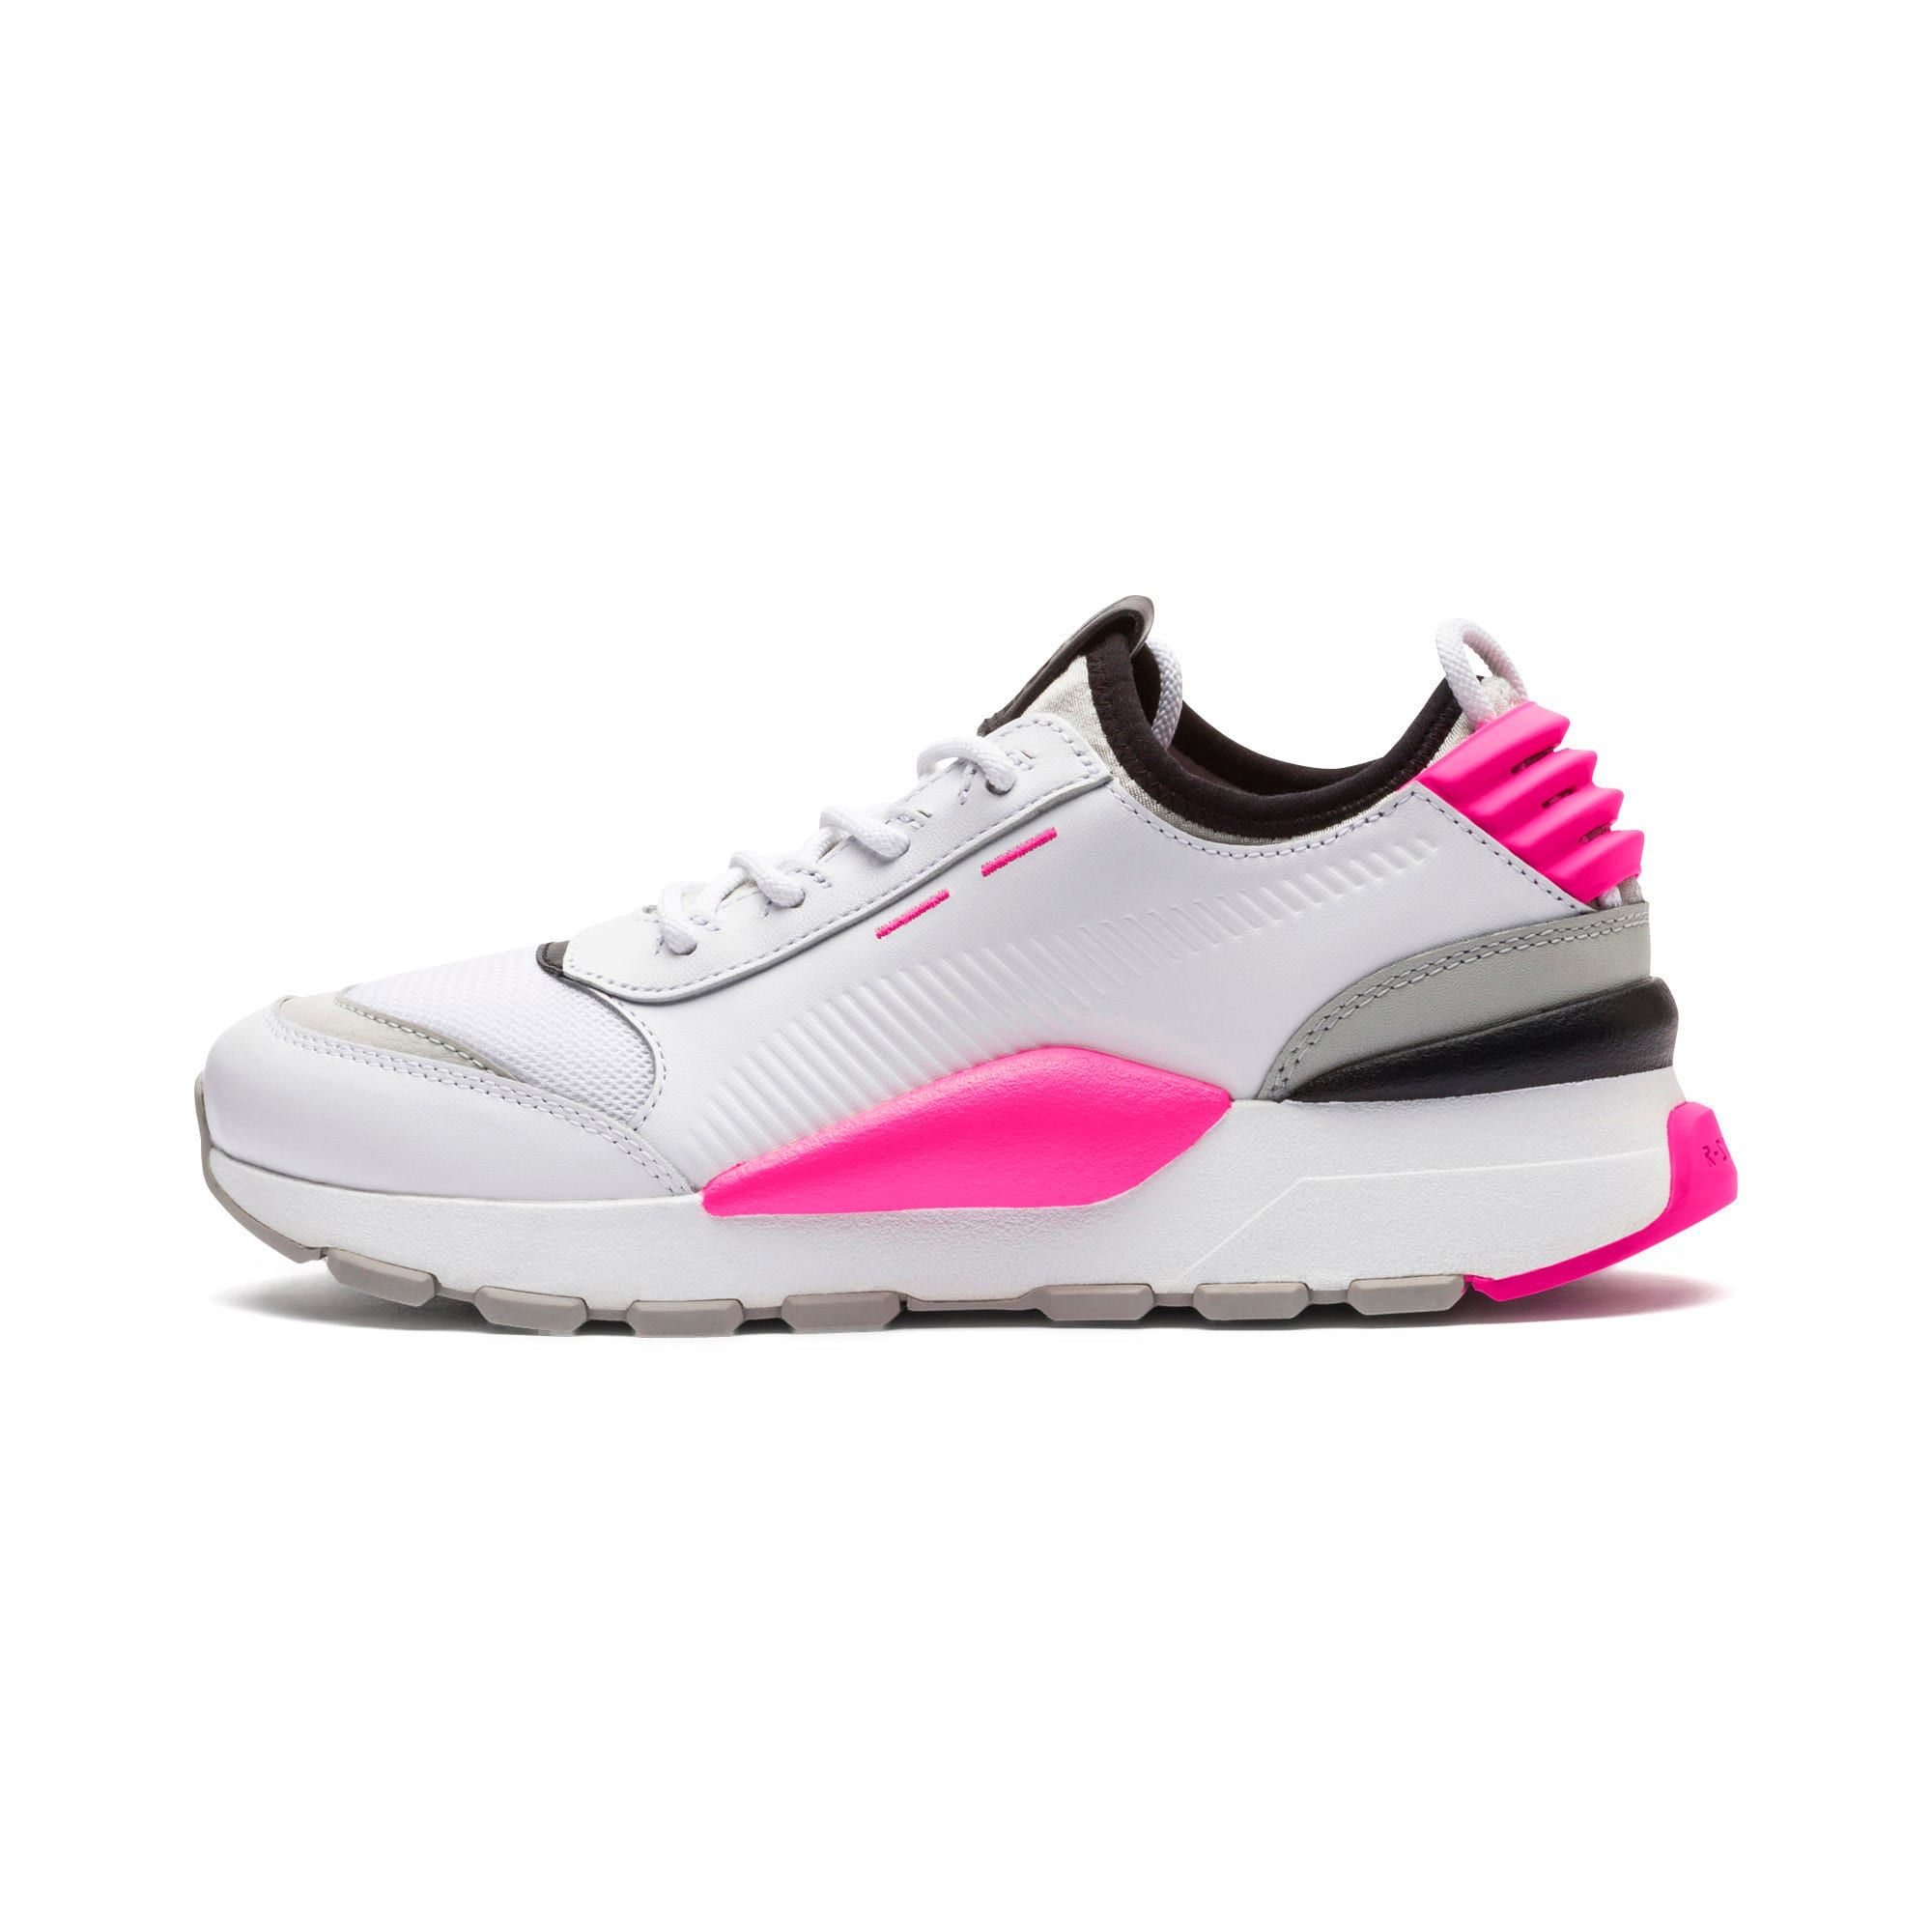 PUMA Chaussure Basket Thunder Leather, Blanc, Taille 44.5